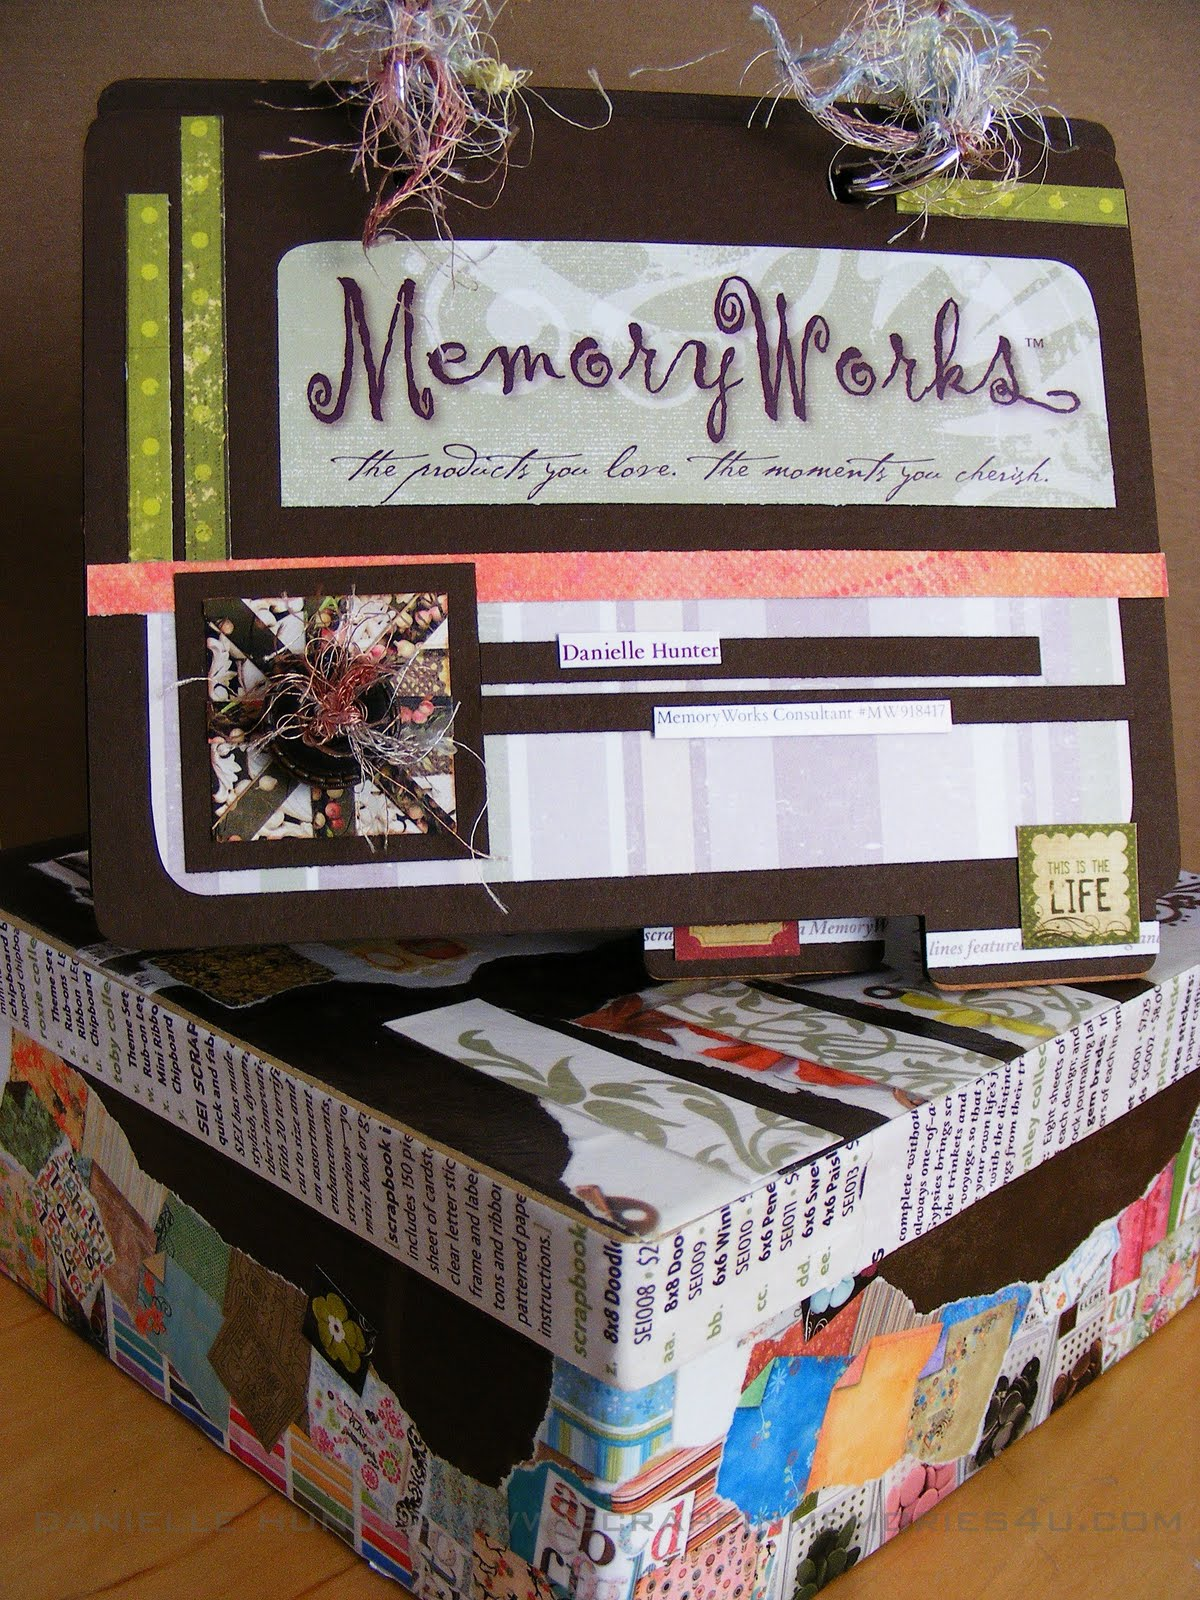 How to delete scrapbook photos google+ - As I Was Planning A Memoryworks Scrapbook Party I Wanted To Design Something That Would Help Me With My Presentation And Ended Up Creating A Mini Album